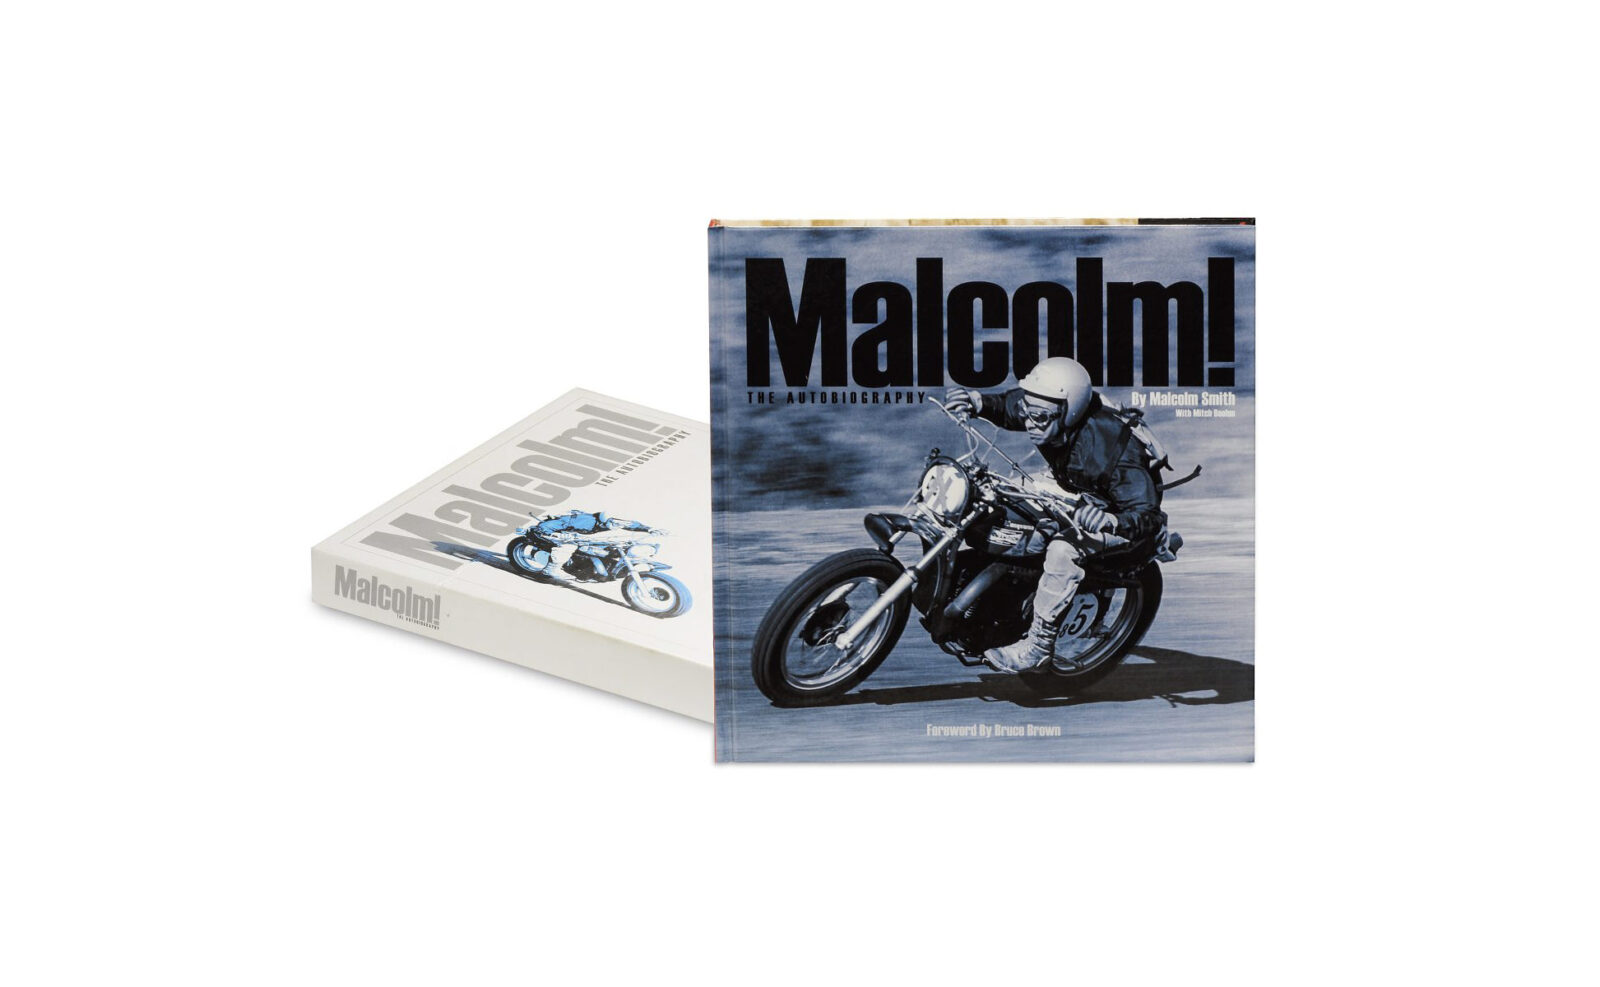 Malcolm The Autobiography 1600x987 - Malcolm! The Autobiography